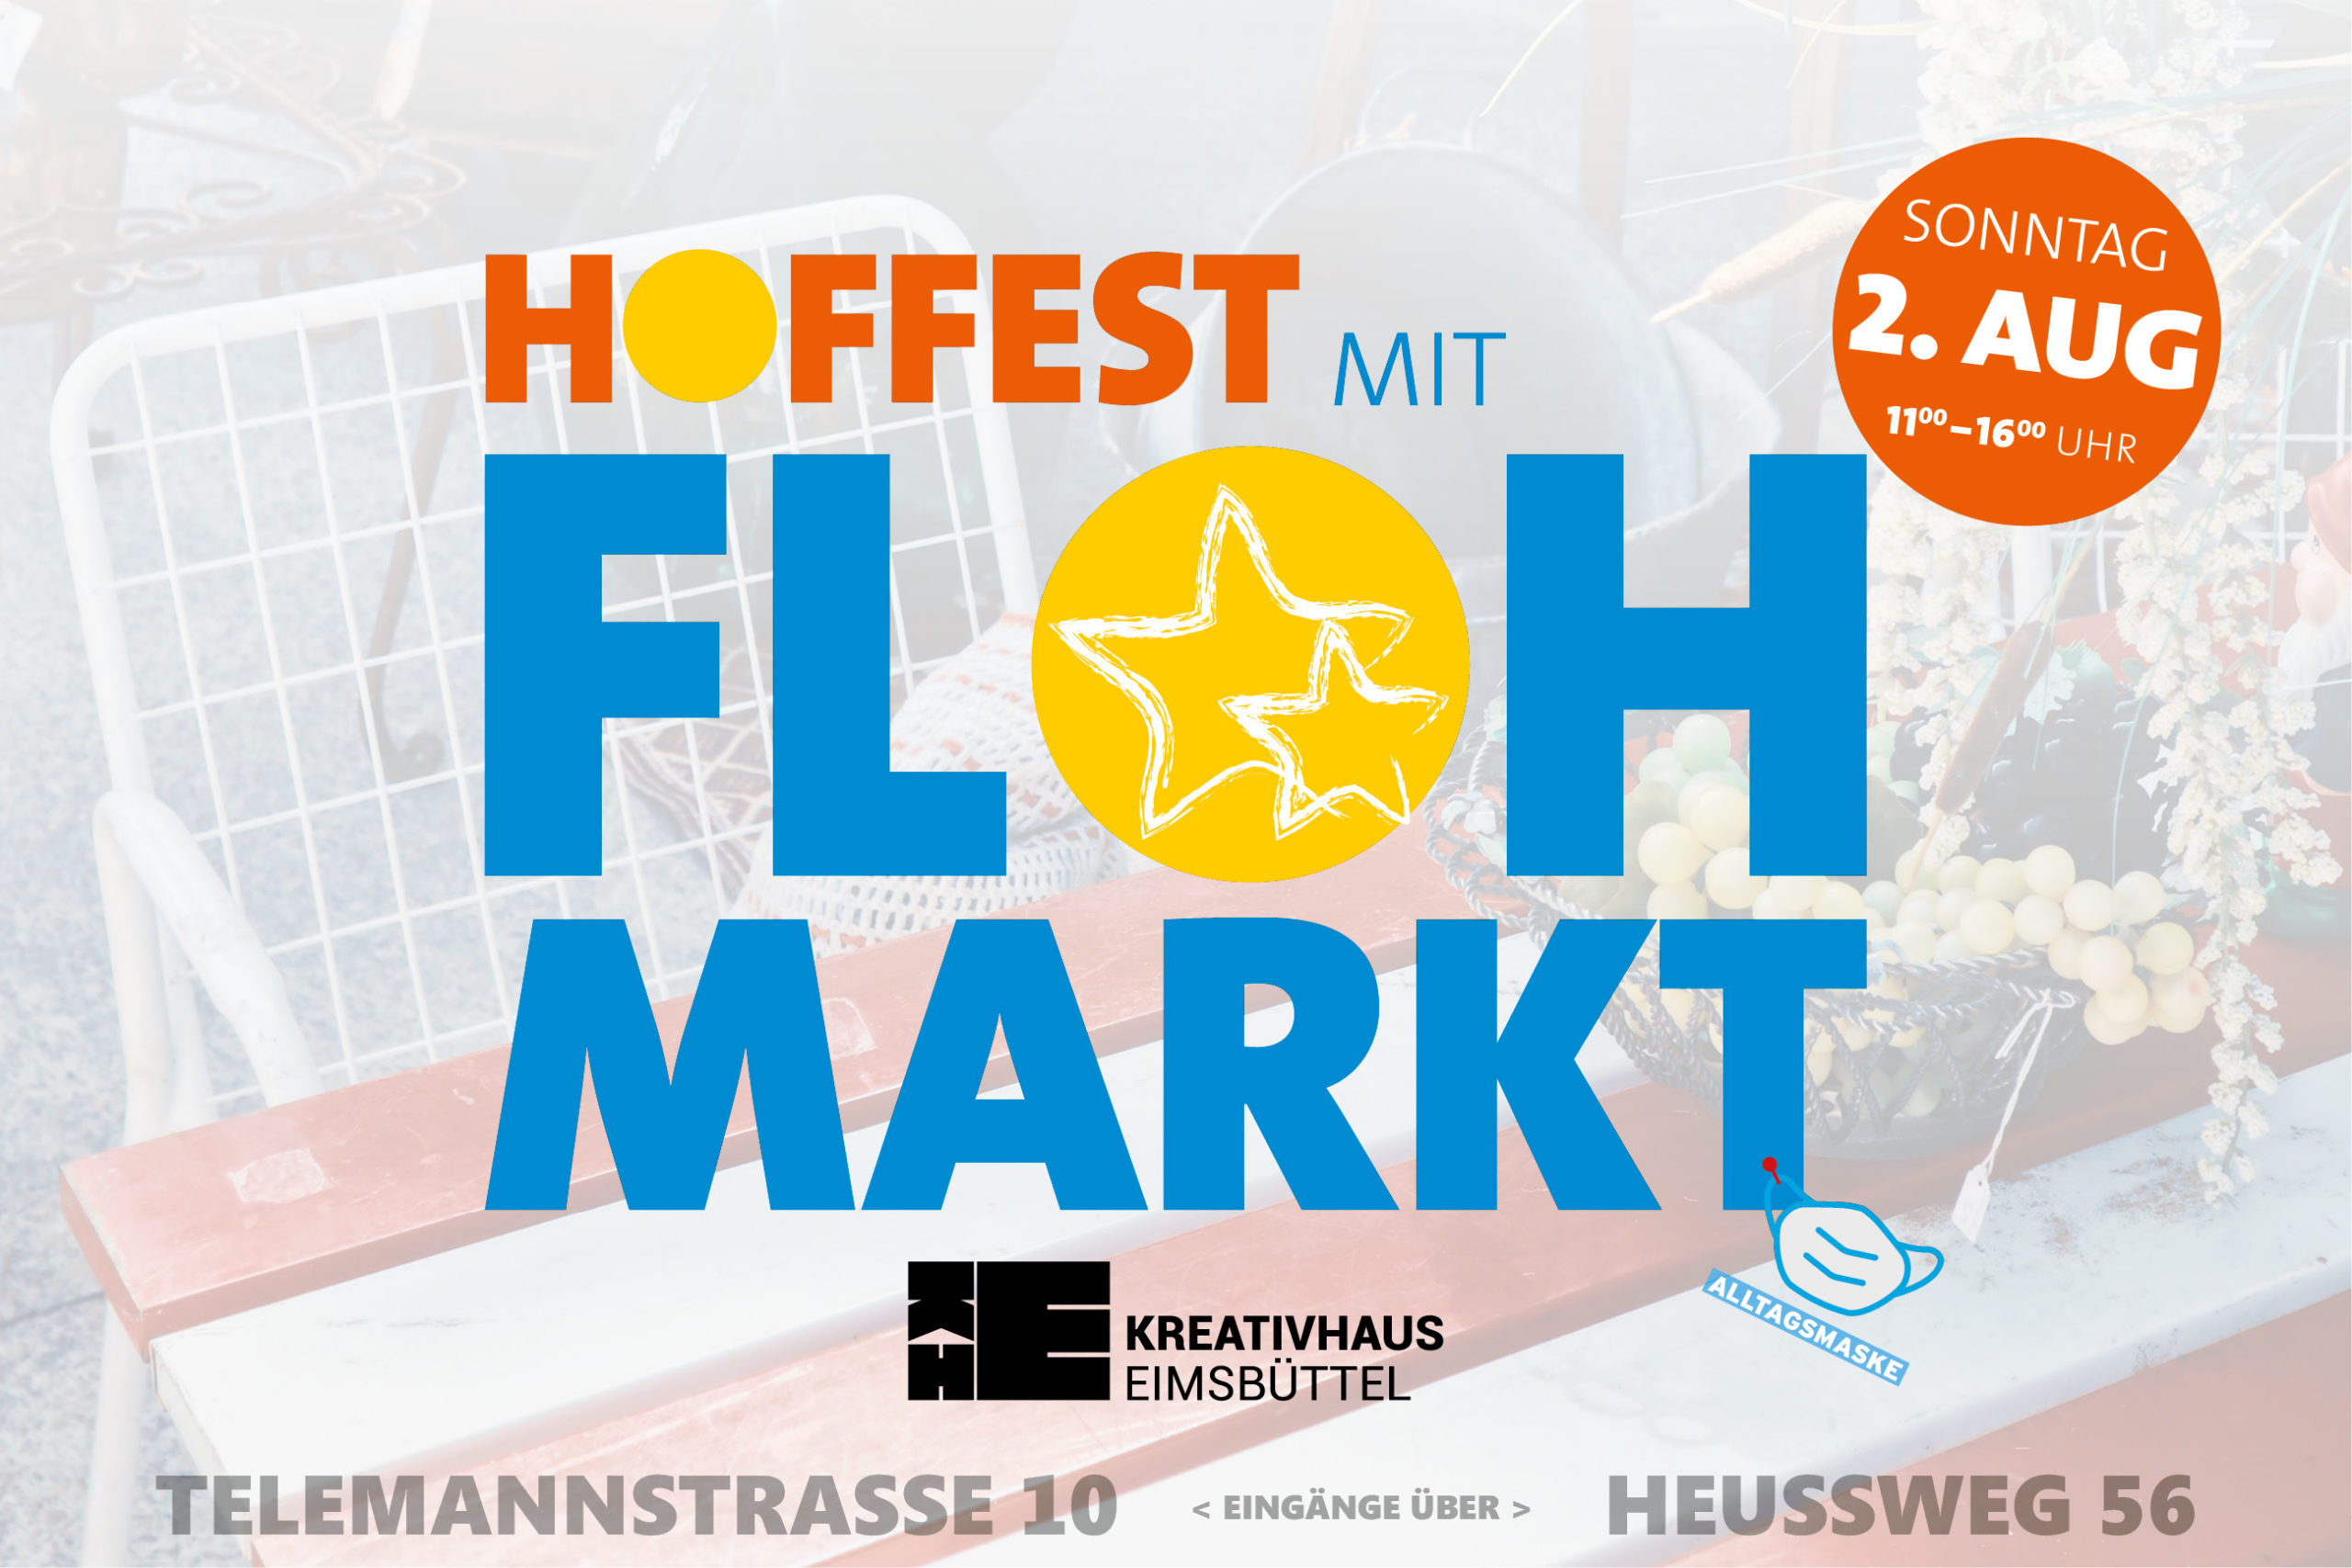 Flohmarkt in Eimsbüttel 2. August 2020